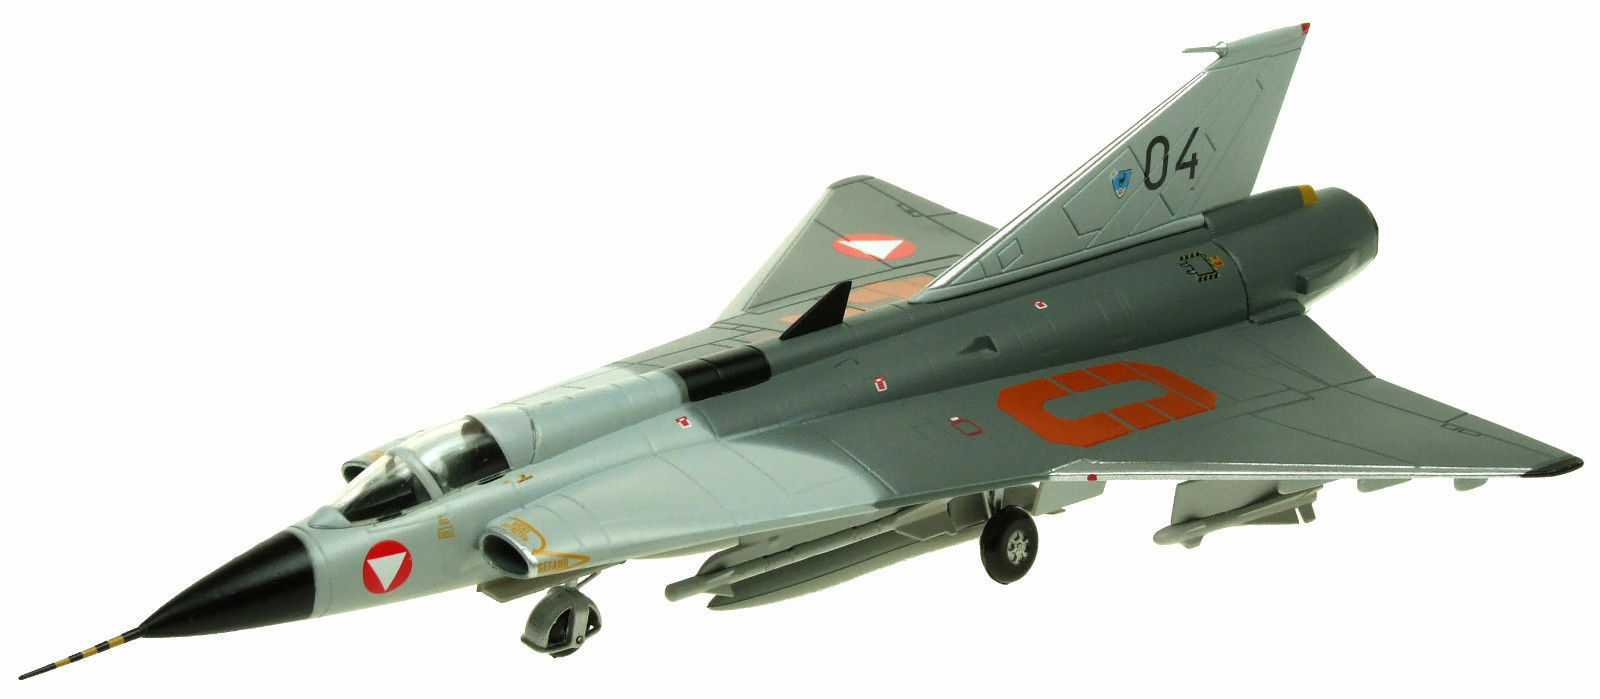 AVIATION72 AV7241006 1 72 SAAB DRAKEN J35 AUSTRIAN AIR FORCE 04 WITH STAND